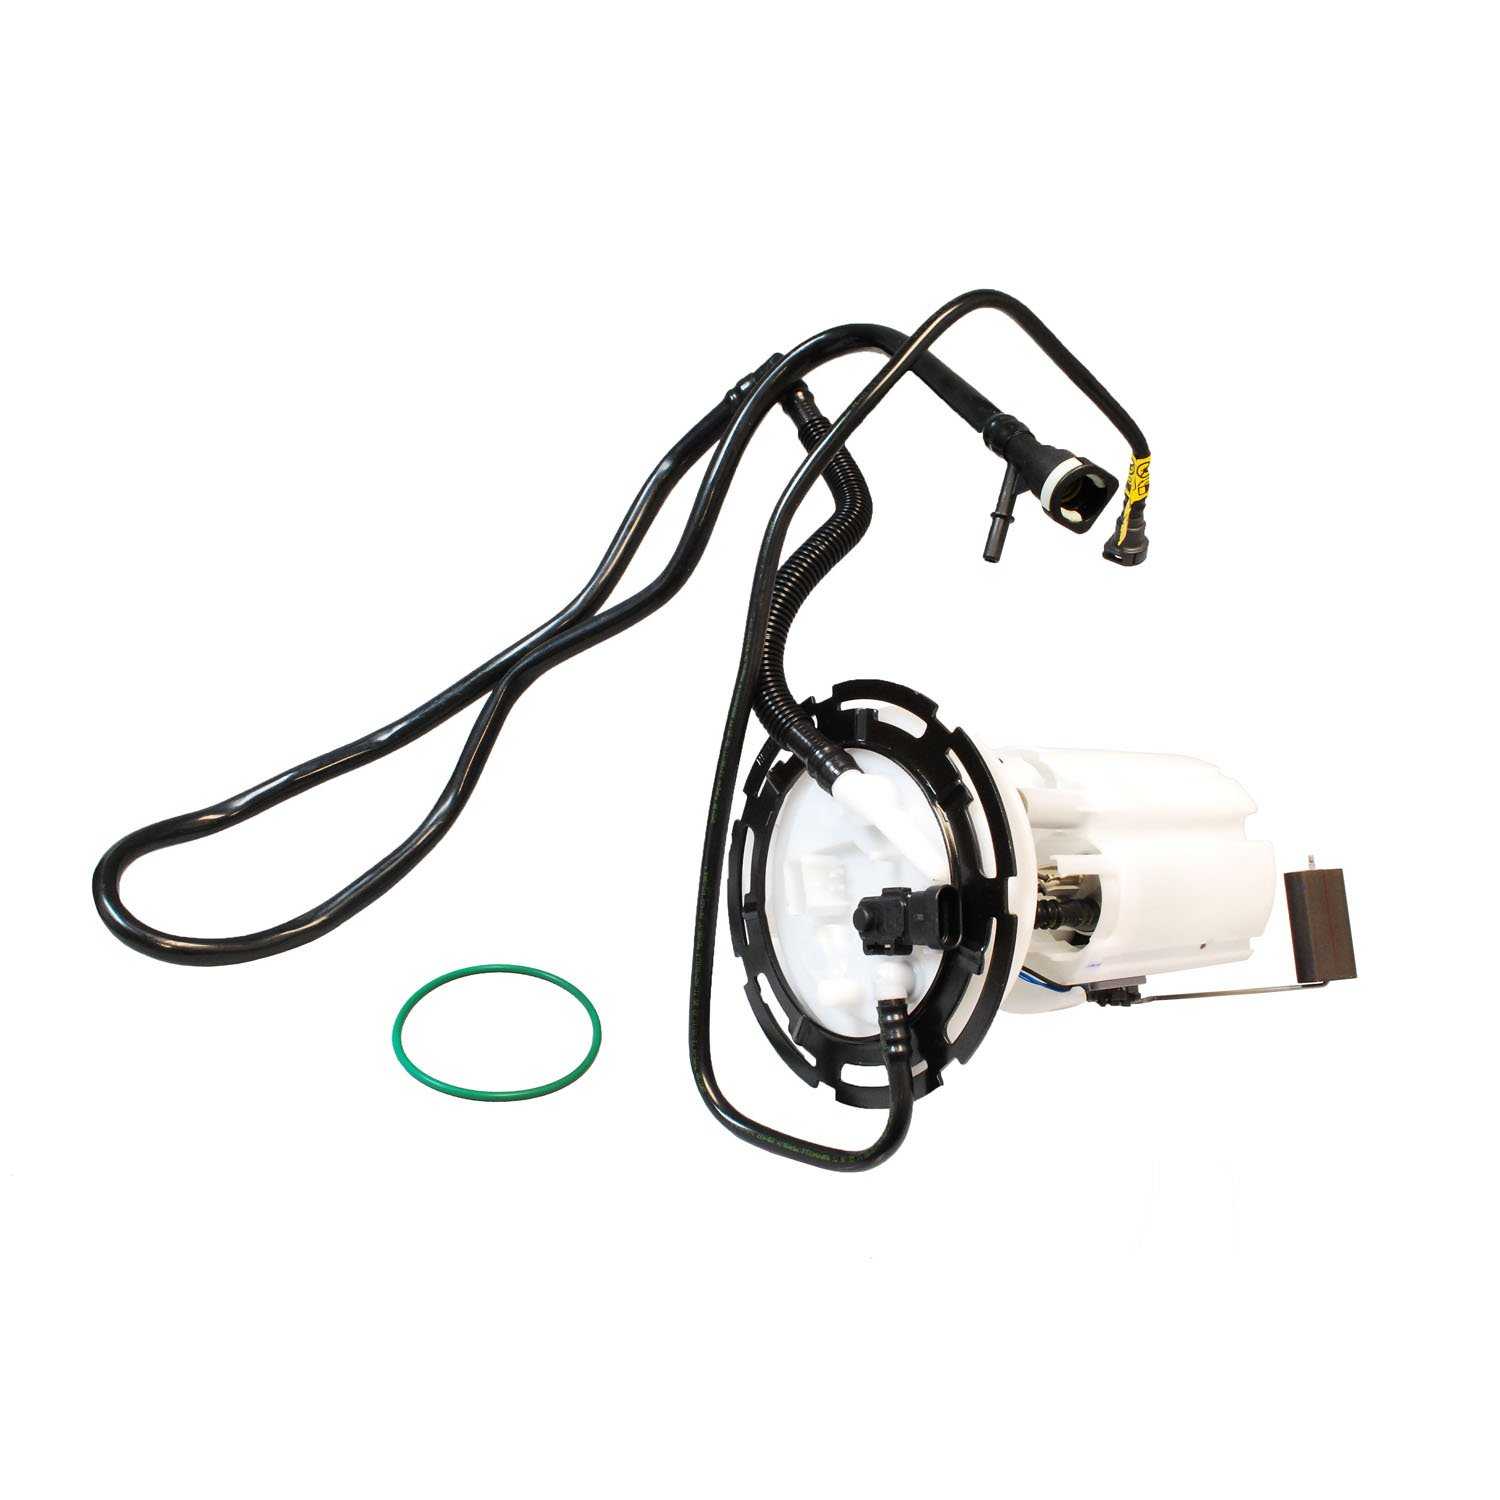 2008 Chevrolet Malibu Fuel Pump Module Assembly